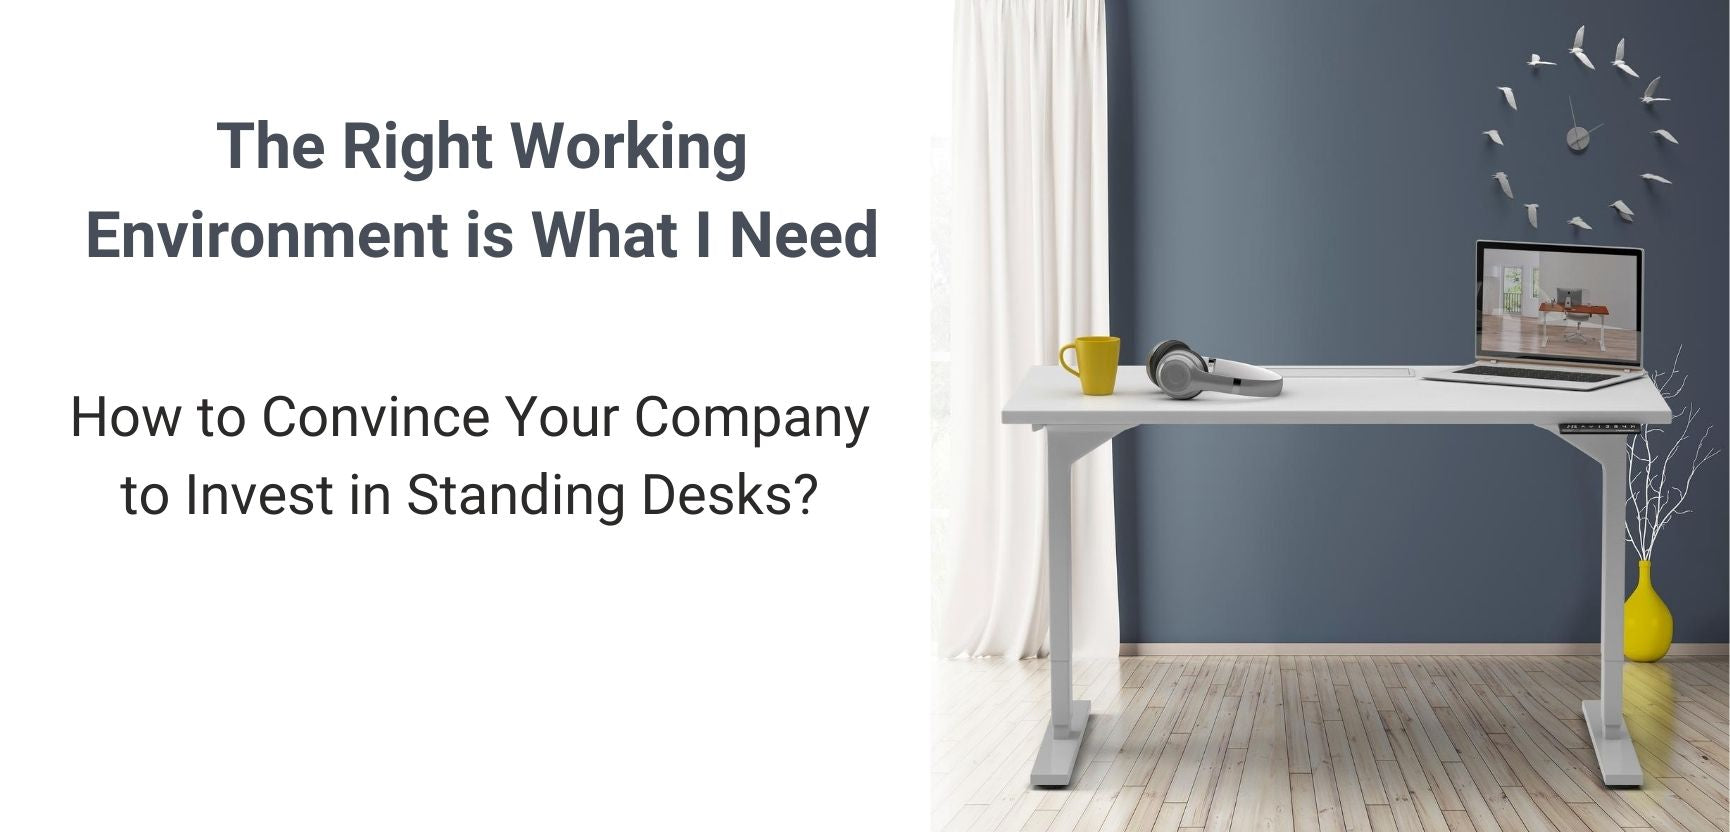 How to Convince Your Company to Swap to Standing Desks